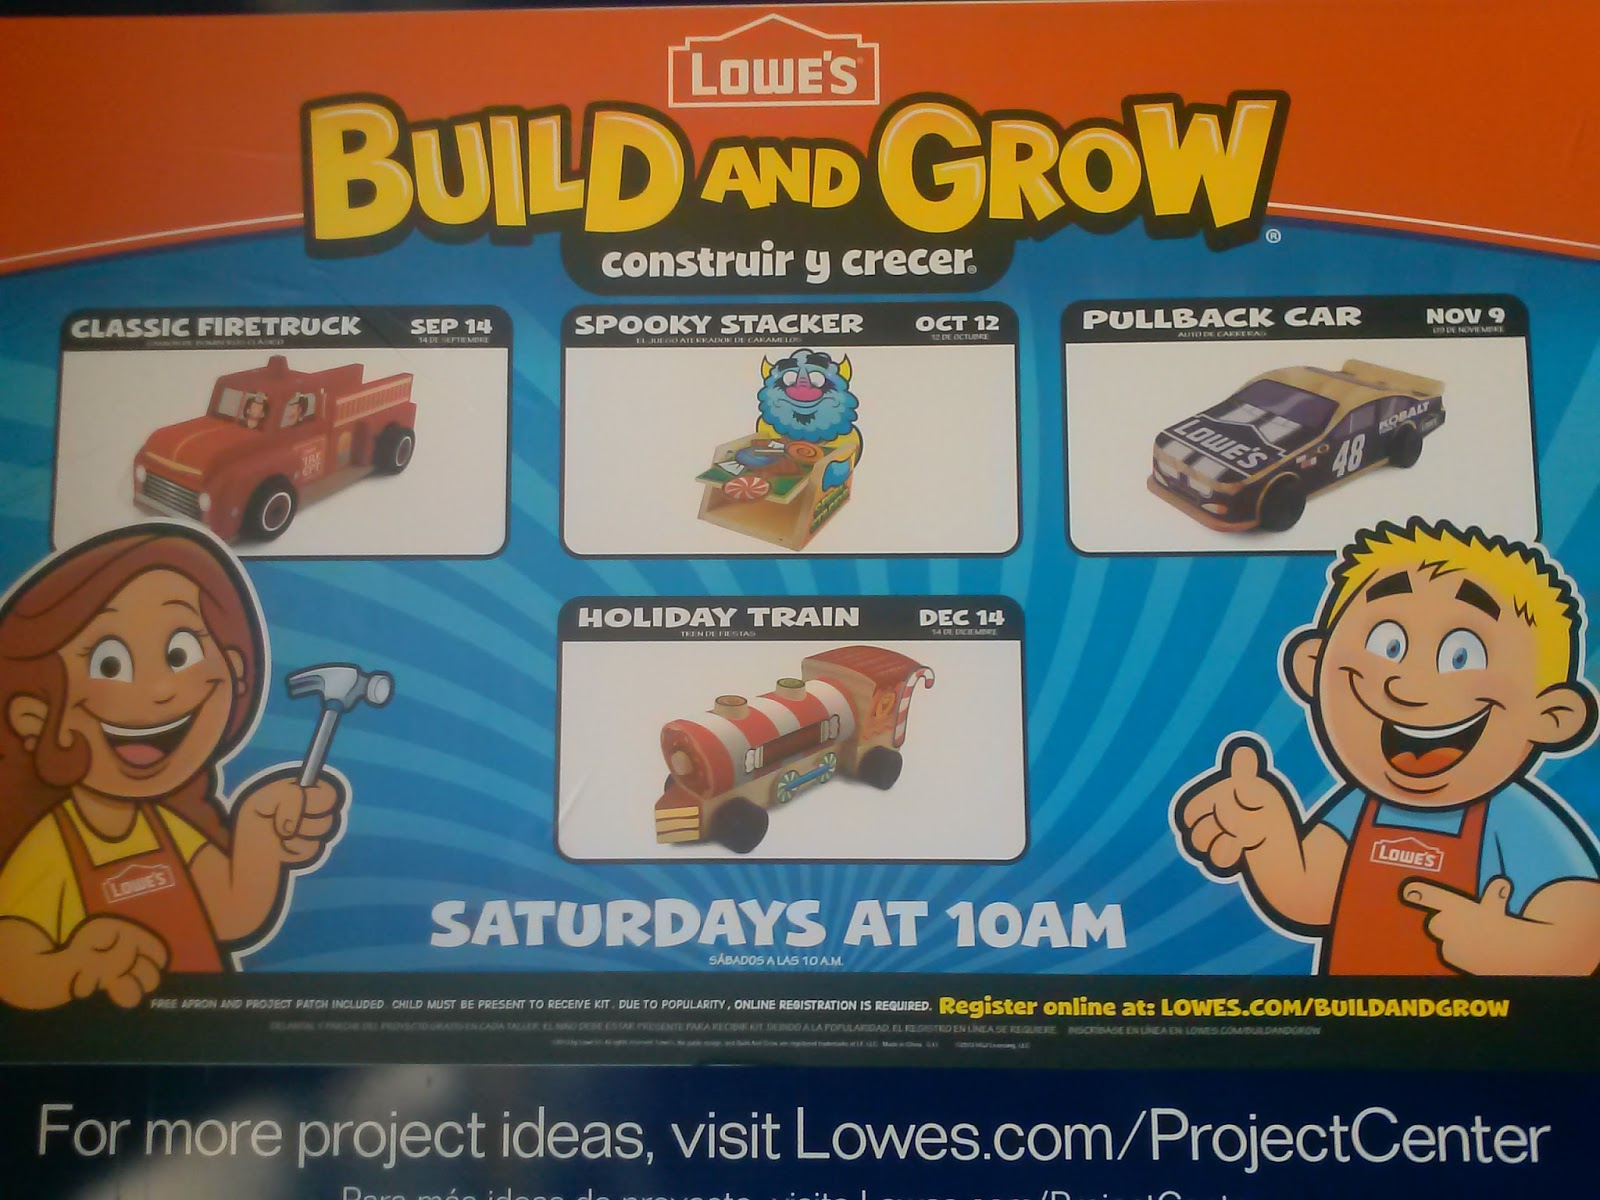 Lowes Build And Grow Sept. - Dec. Clinic Schedule